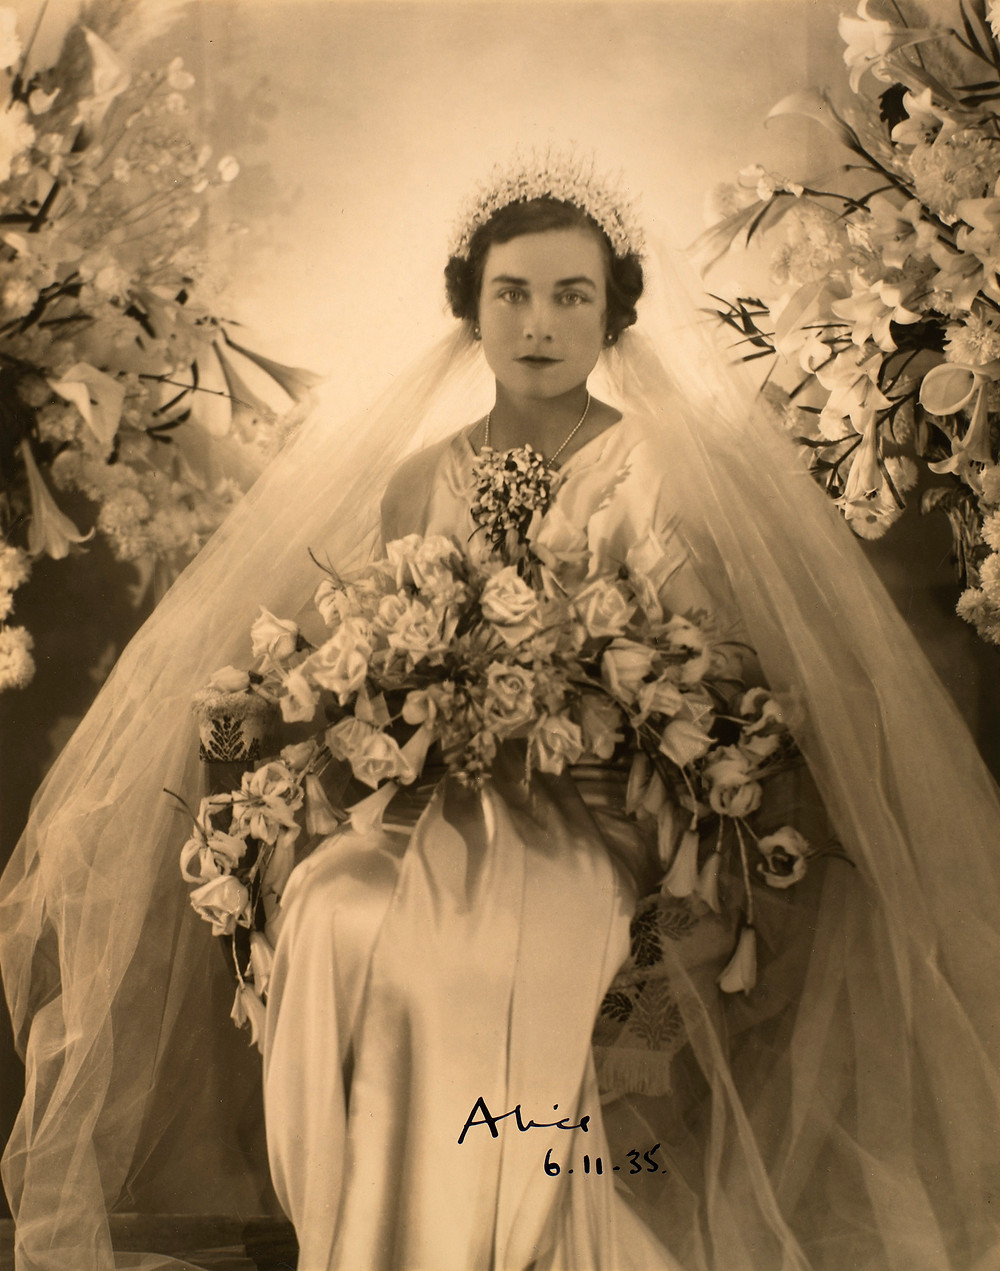 Princess Alice, Duchess of Gloucester (1901-2004) on her wedding day 6 Nov 1935. Royal Collection Trust/(c) Her Majesty Queen Elizabeth II 2018